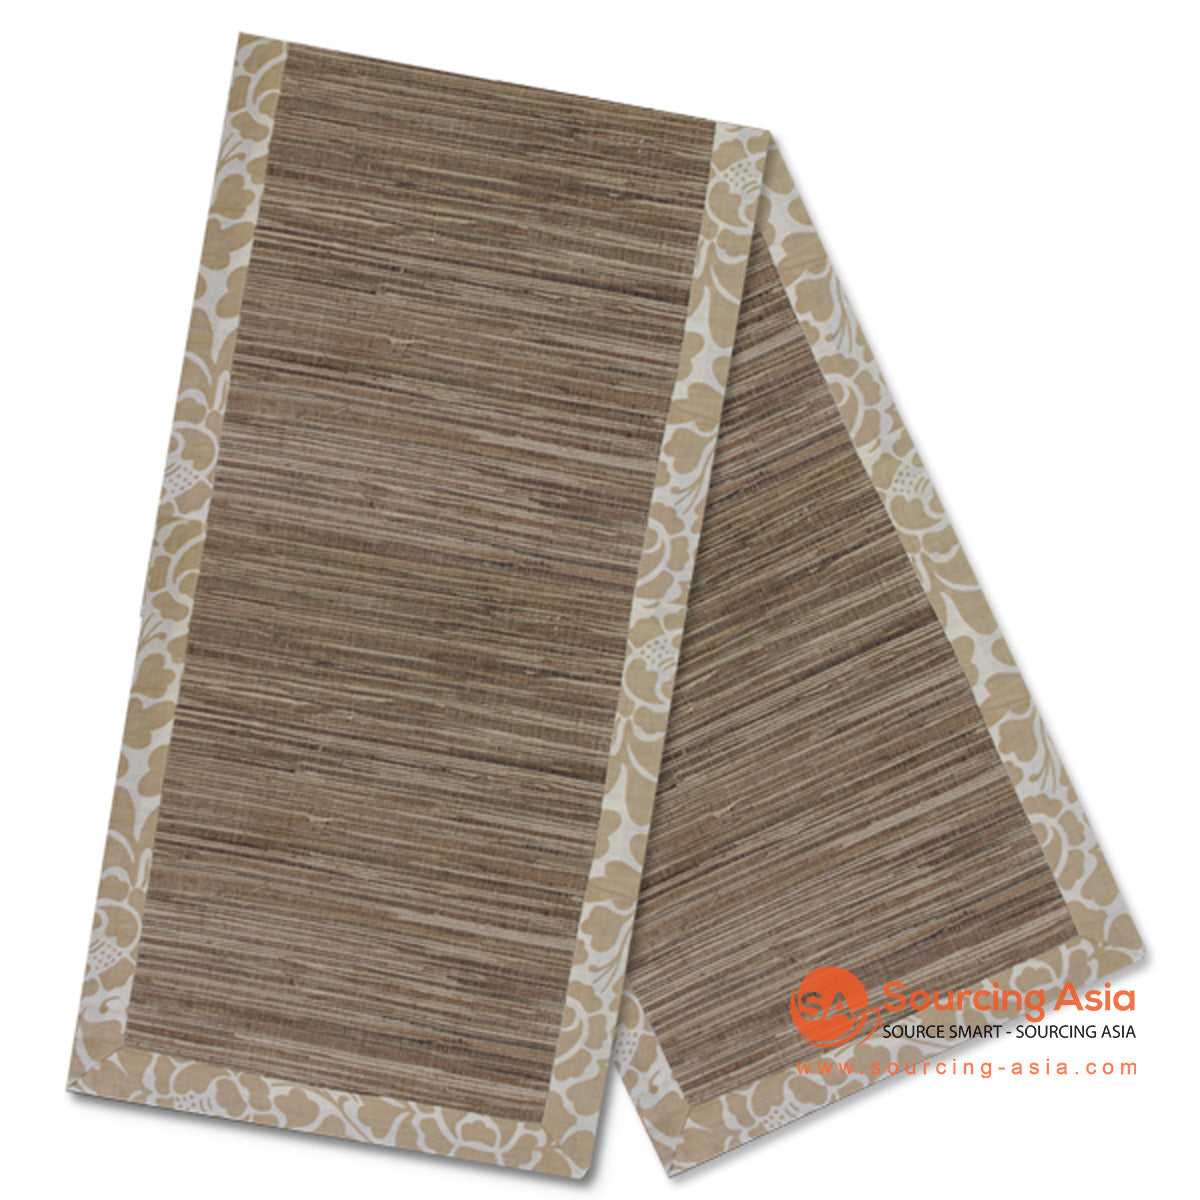 BZN045 SANDALWOOD TABLE RUNNER